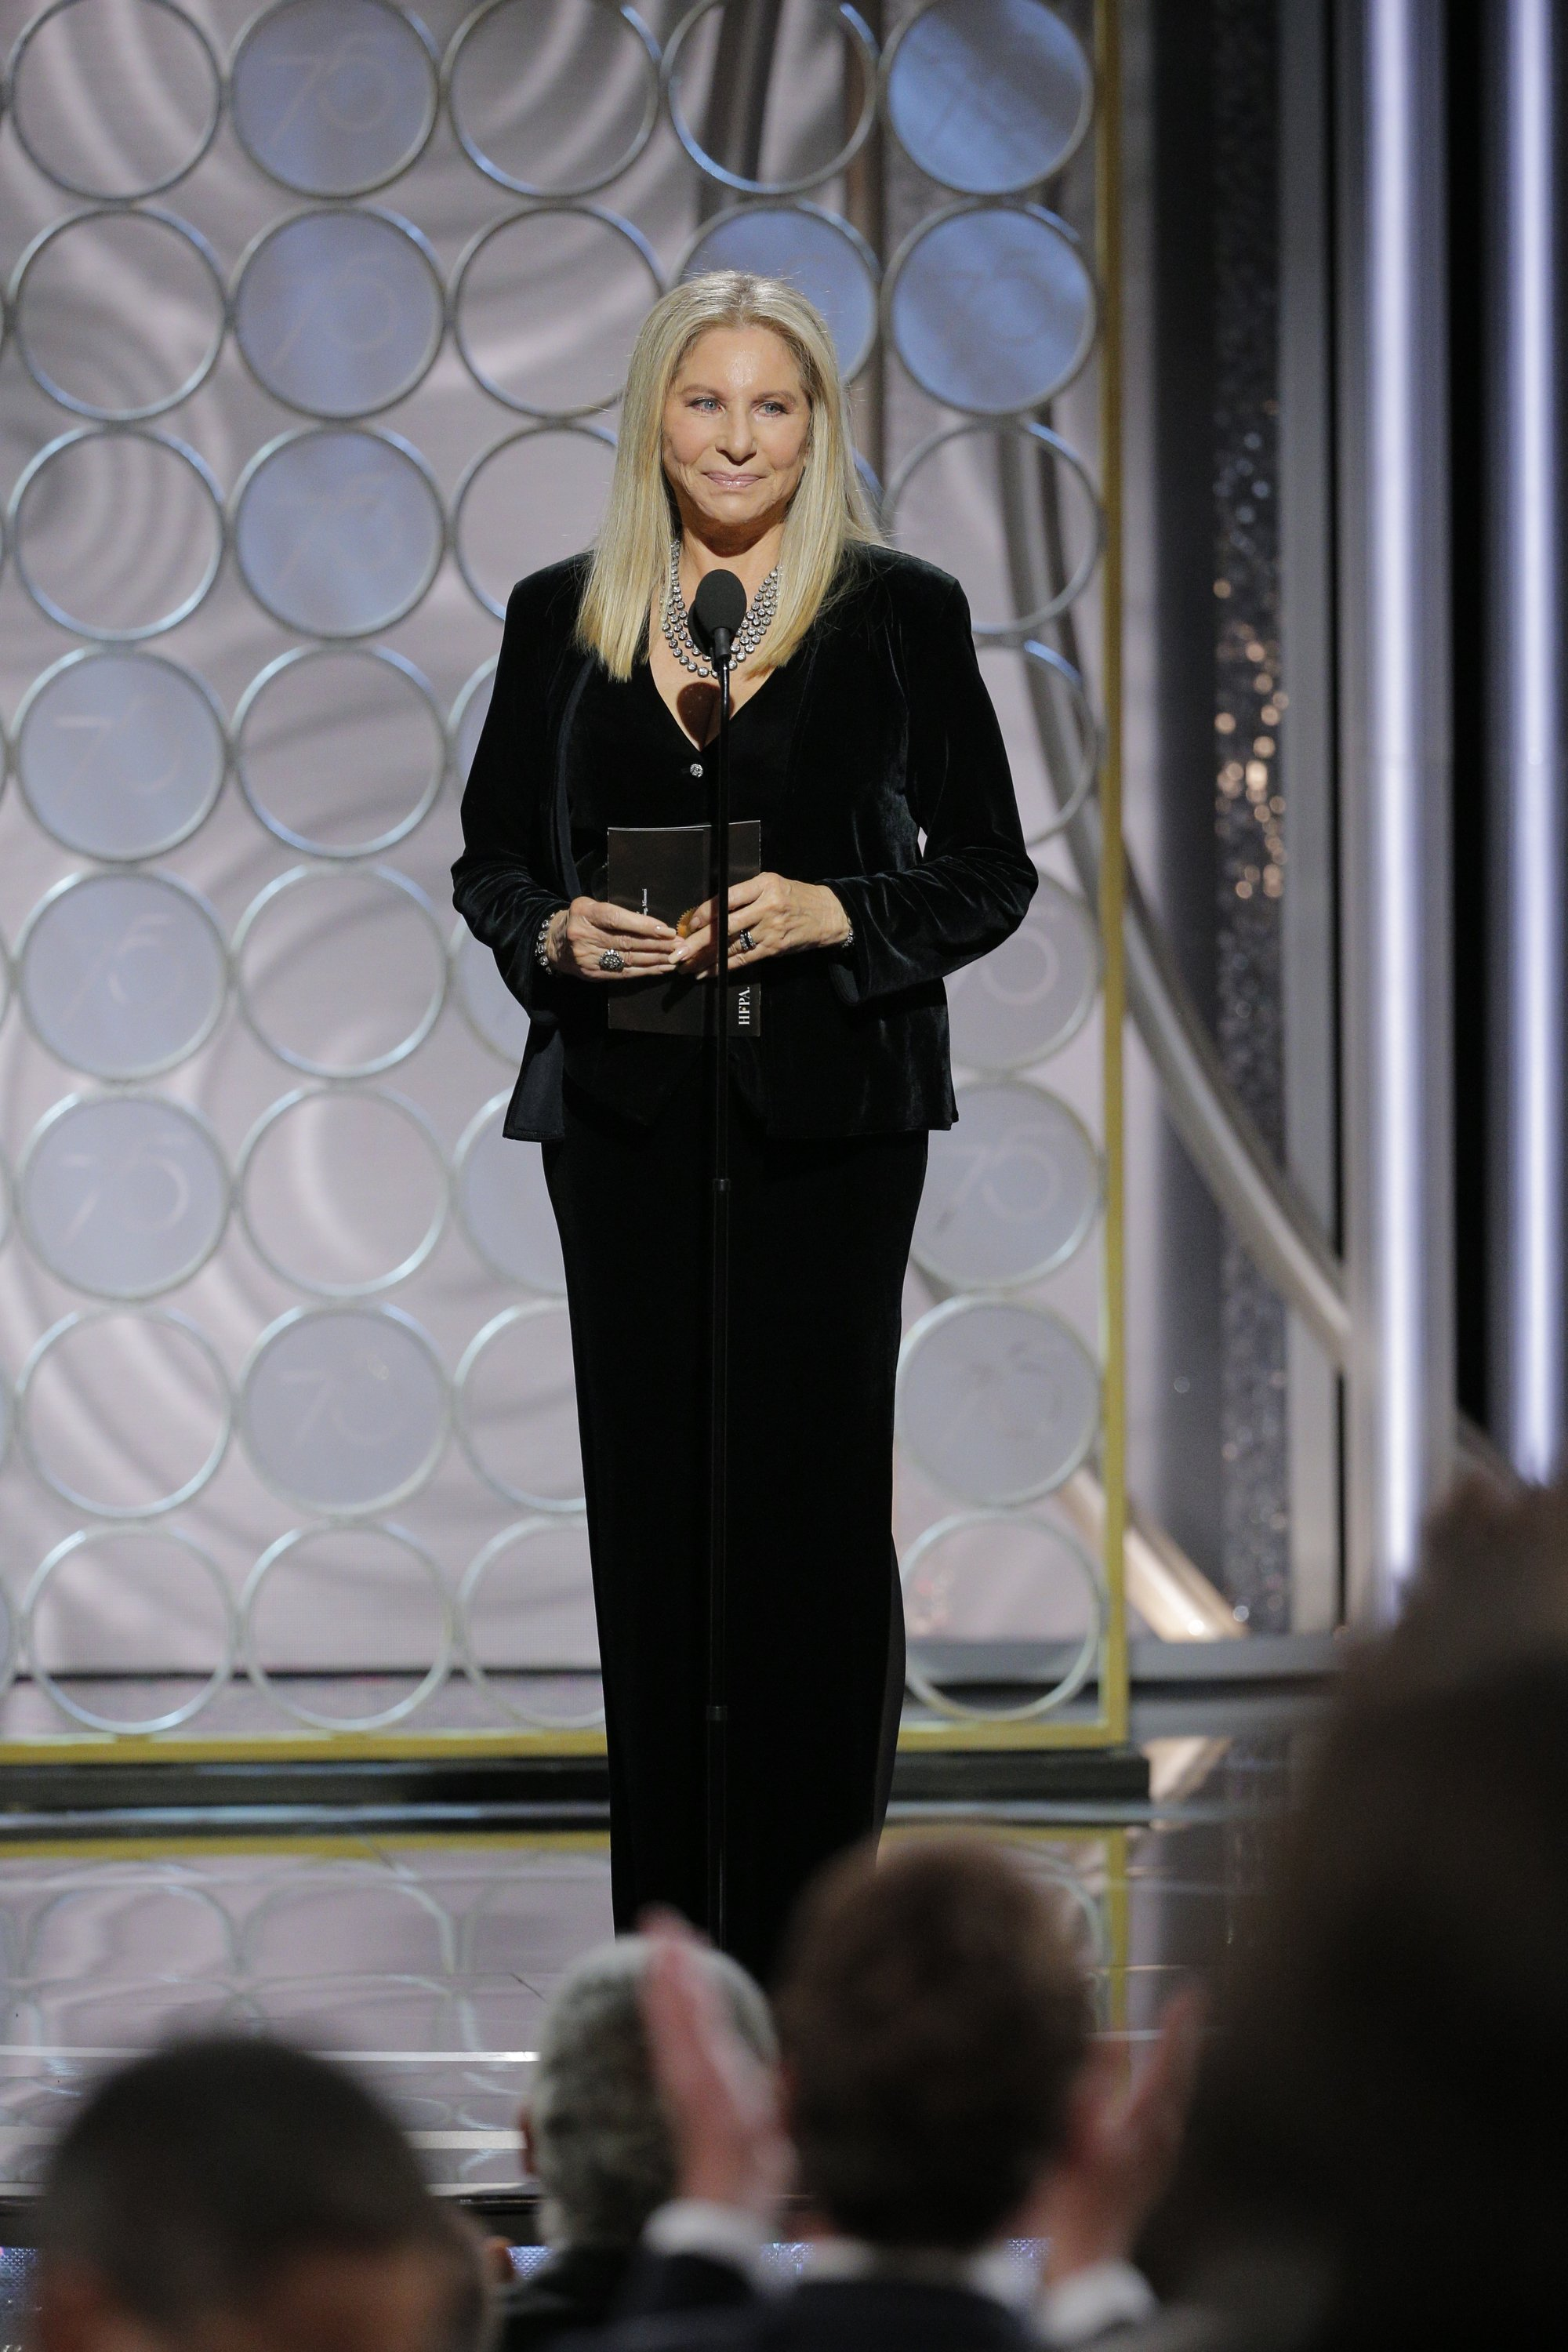 Barbra Steisand gives a speech at the 2018 Golden Globe Awards | Photo: Getty Images